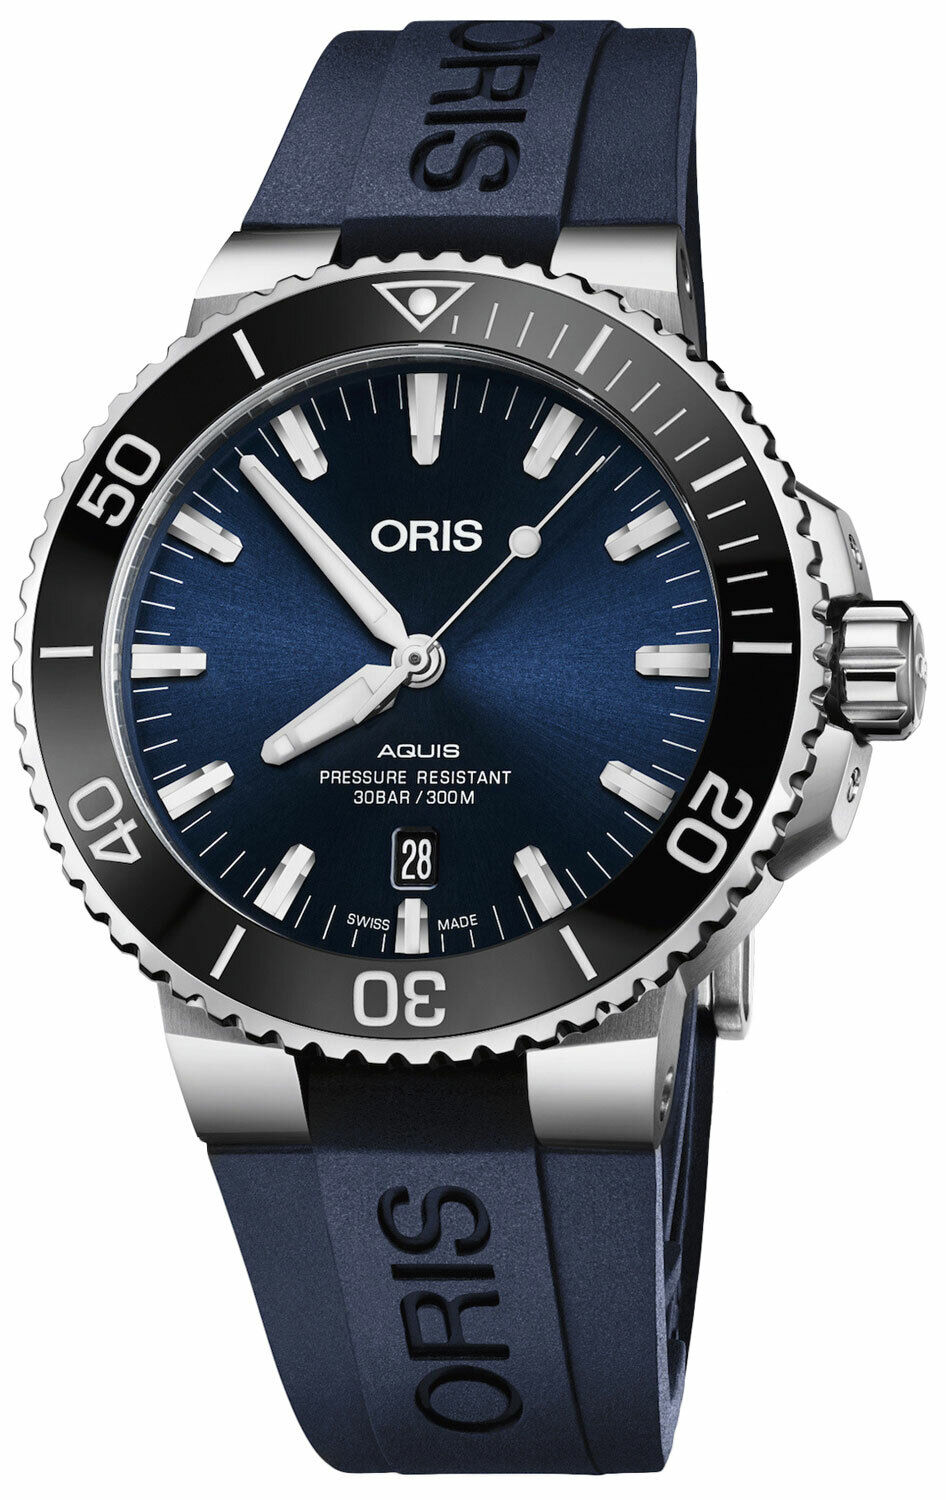 New Oris Aquis Blue Dial Automatic Watch 01 733 7730 4135-07 4 24 65EB - watch picture 1